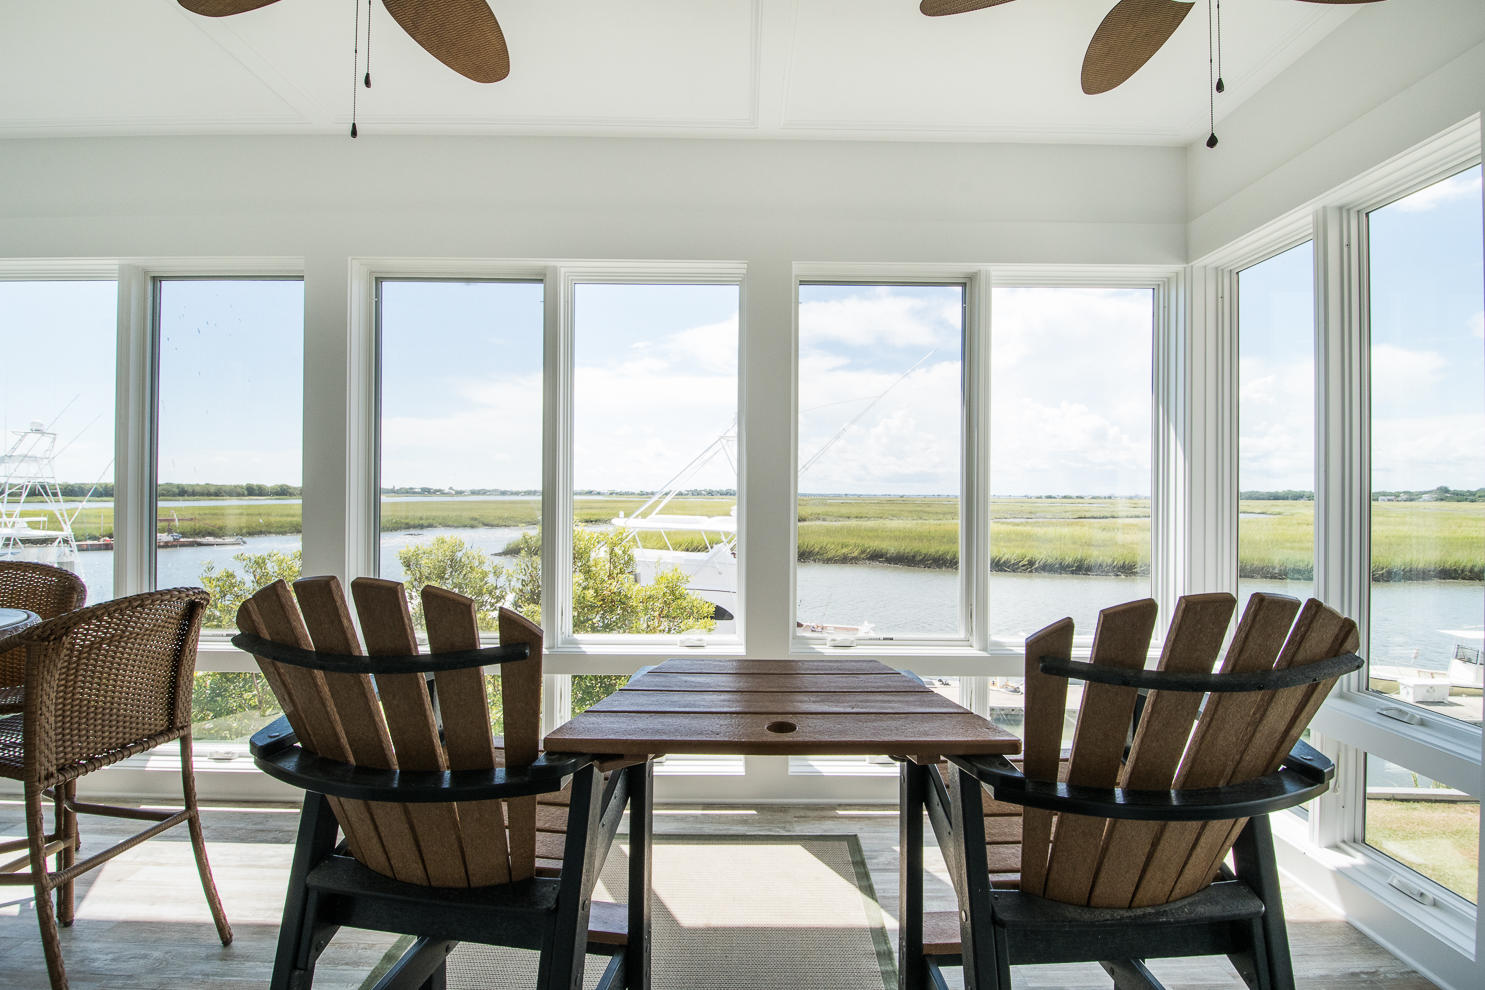 Tolers Cove Homes For Sale - B-4 & B-5 Tolers Cove Marina 70ft + Home, Mount Pleasant, SC - 28